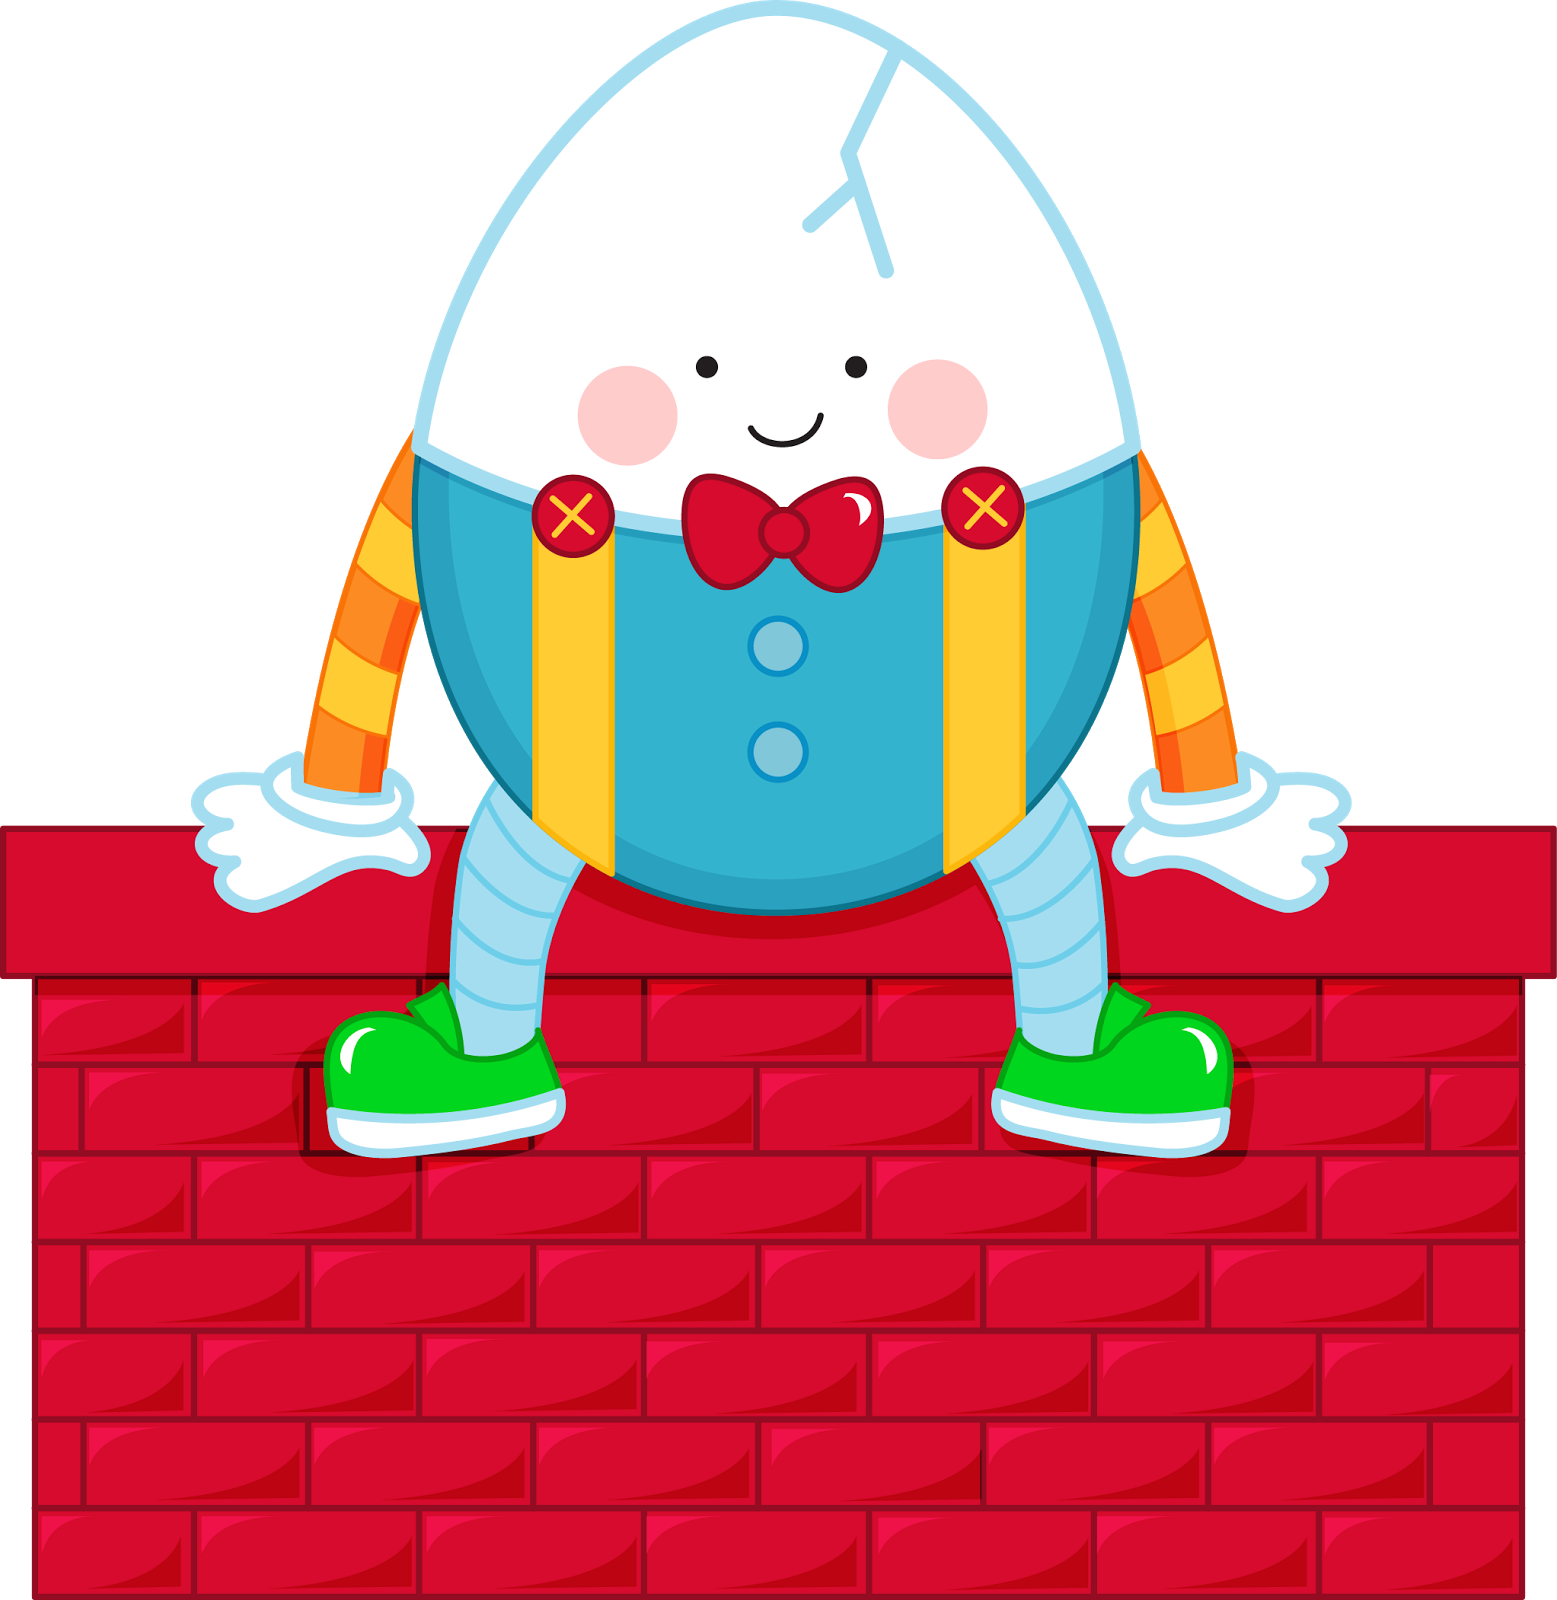 Sequencing group collection google. Humpty dumpty clipart kingsman